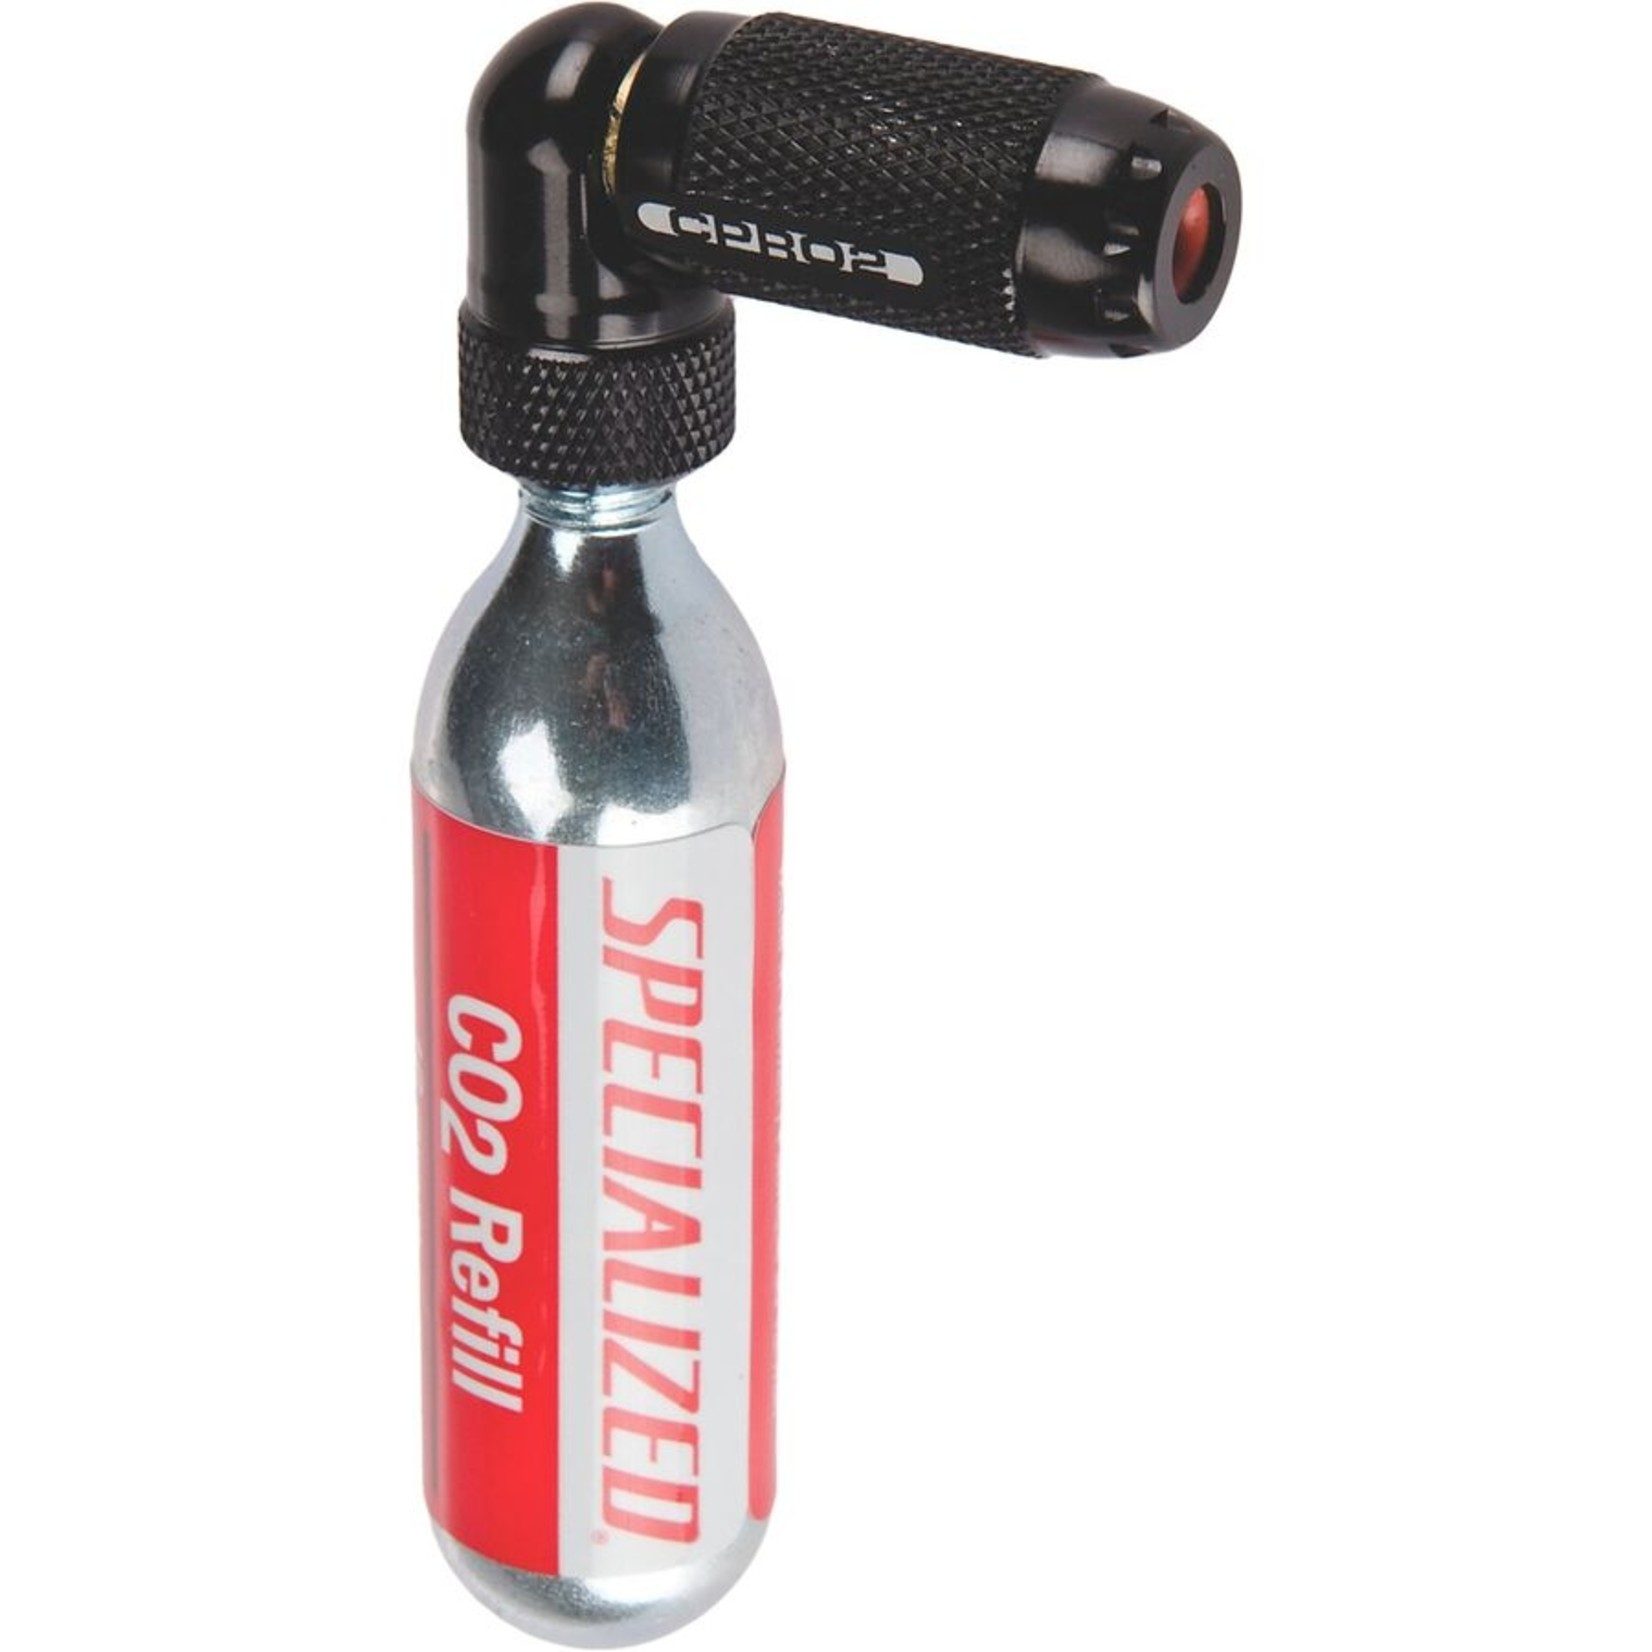 Specialized Specialized Airtool CPR02 Trigger With Cartridge